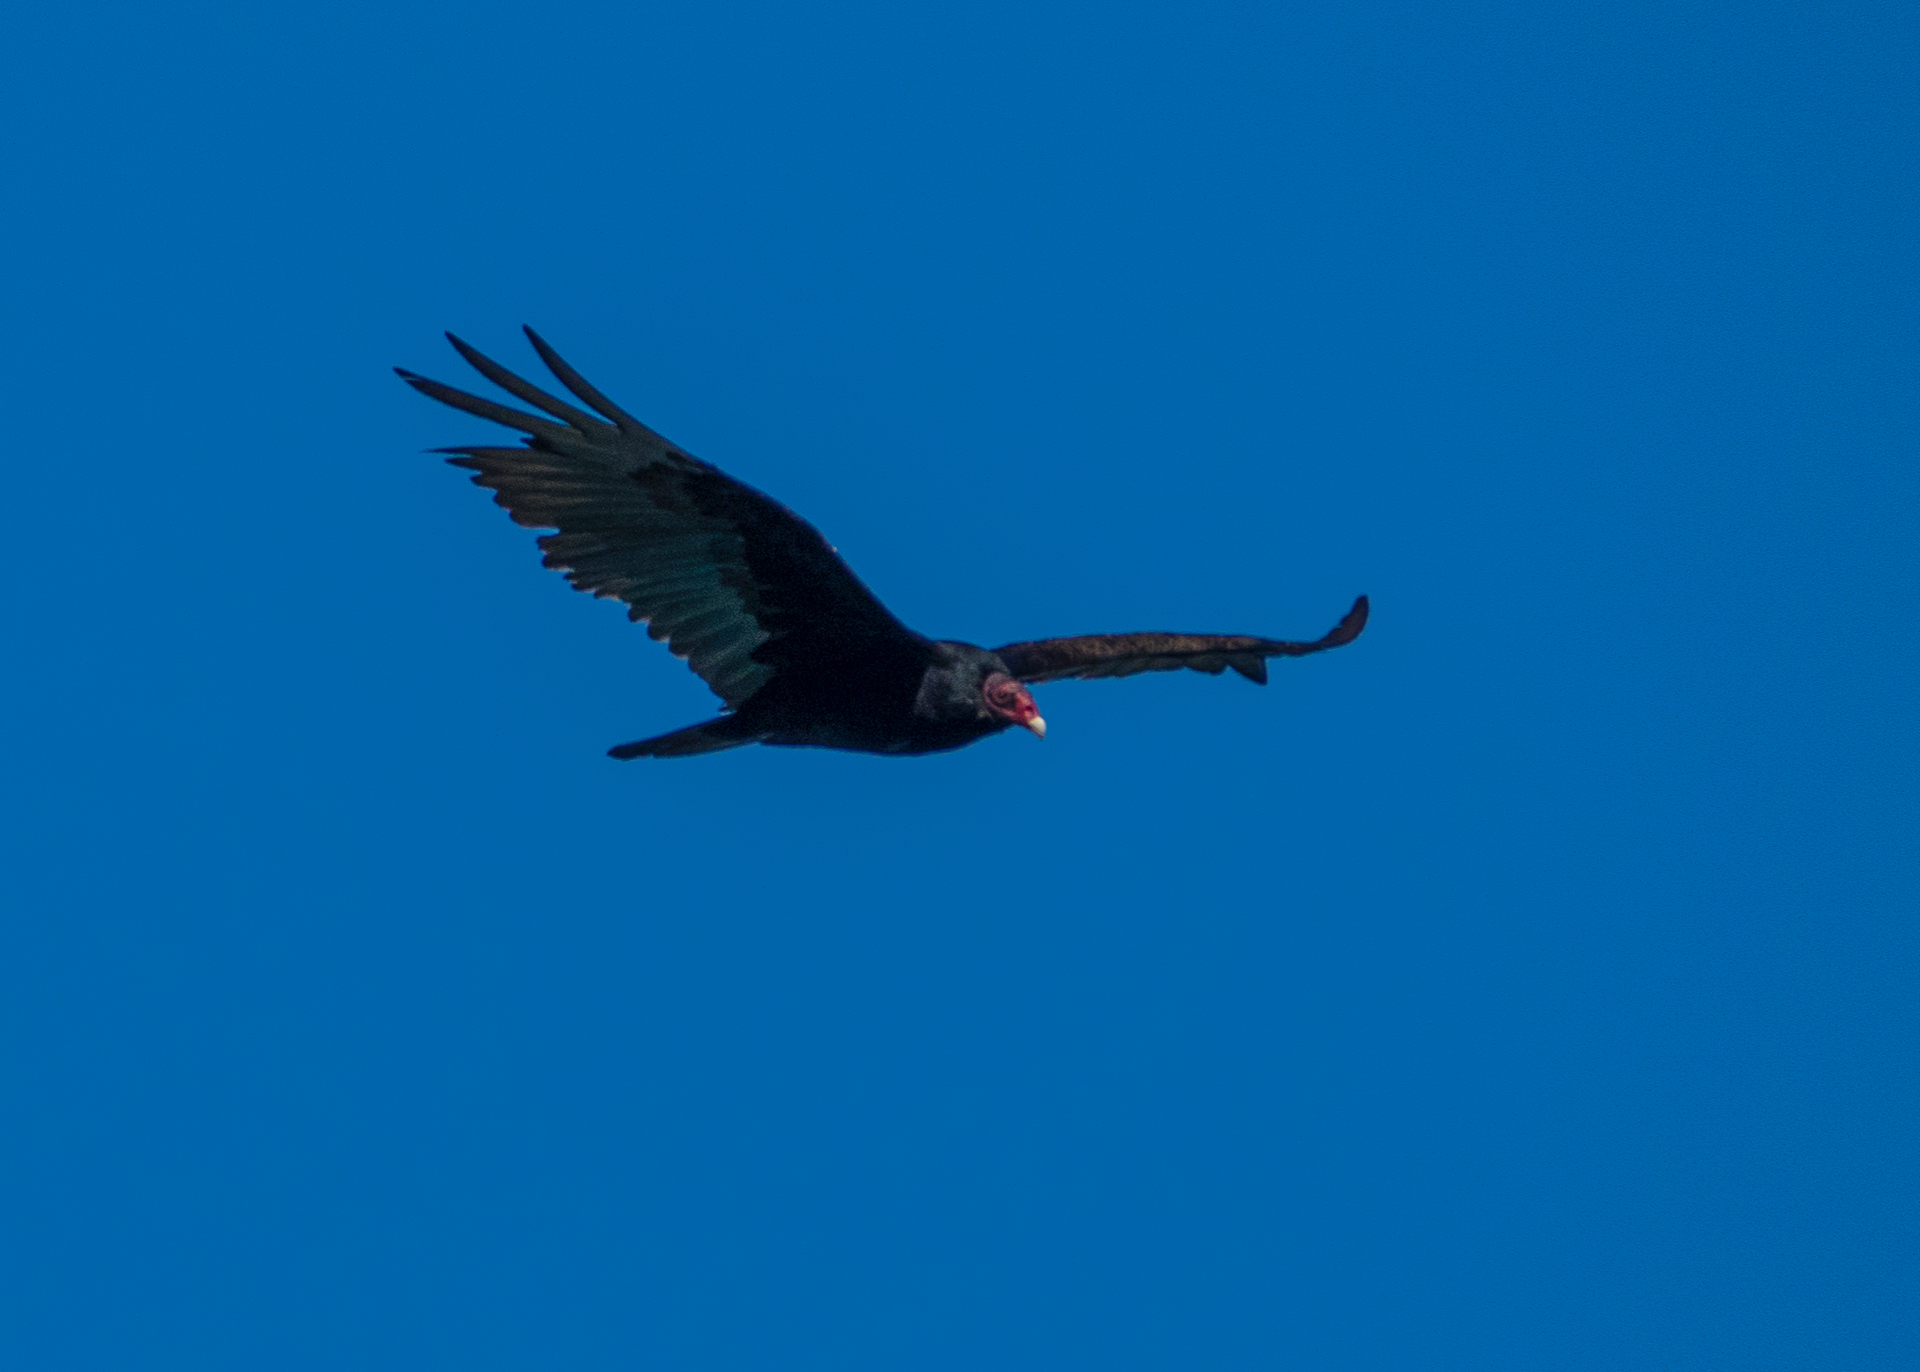 And the turkey vultures were quite plentiful as well.